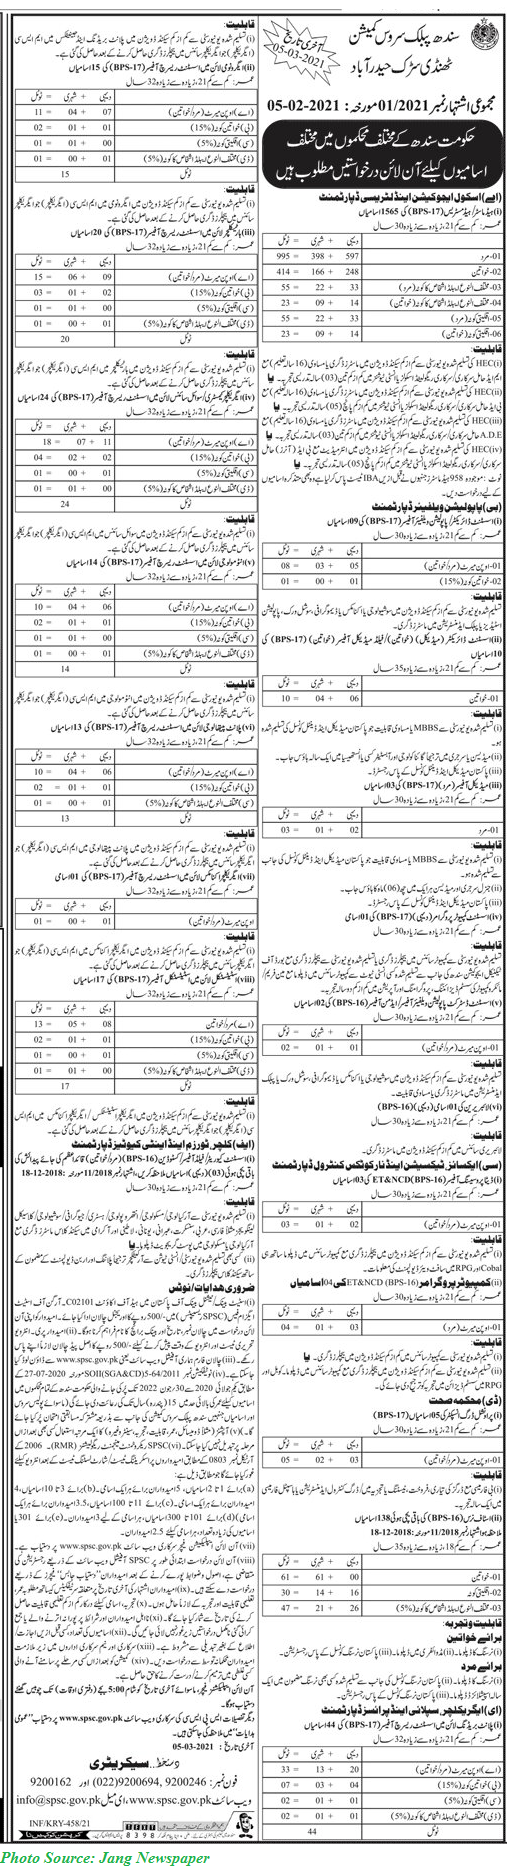 SPS JObs 2021 - Latest Jobs in Sindh Public Service Commission 1560+ Posts of Headmasters  and Headmistress Apply Online Advertisement No. 01/2021